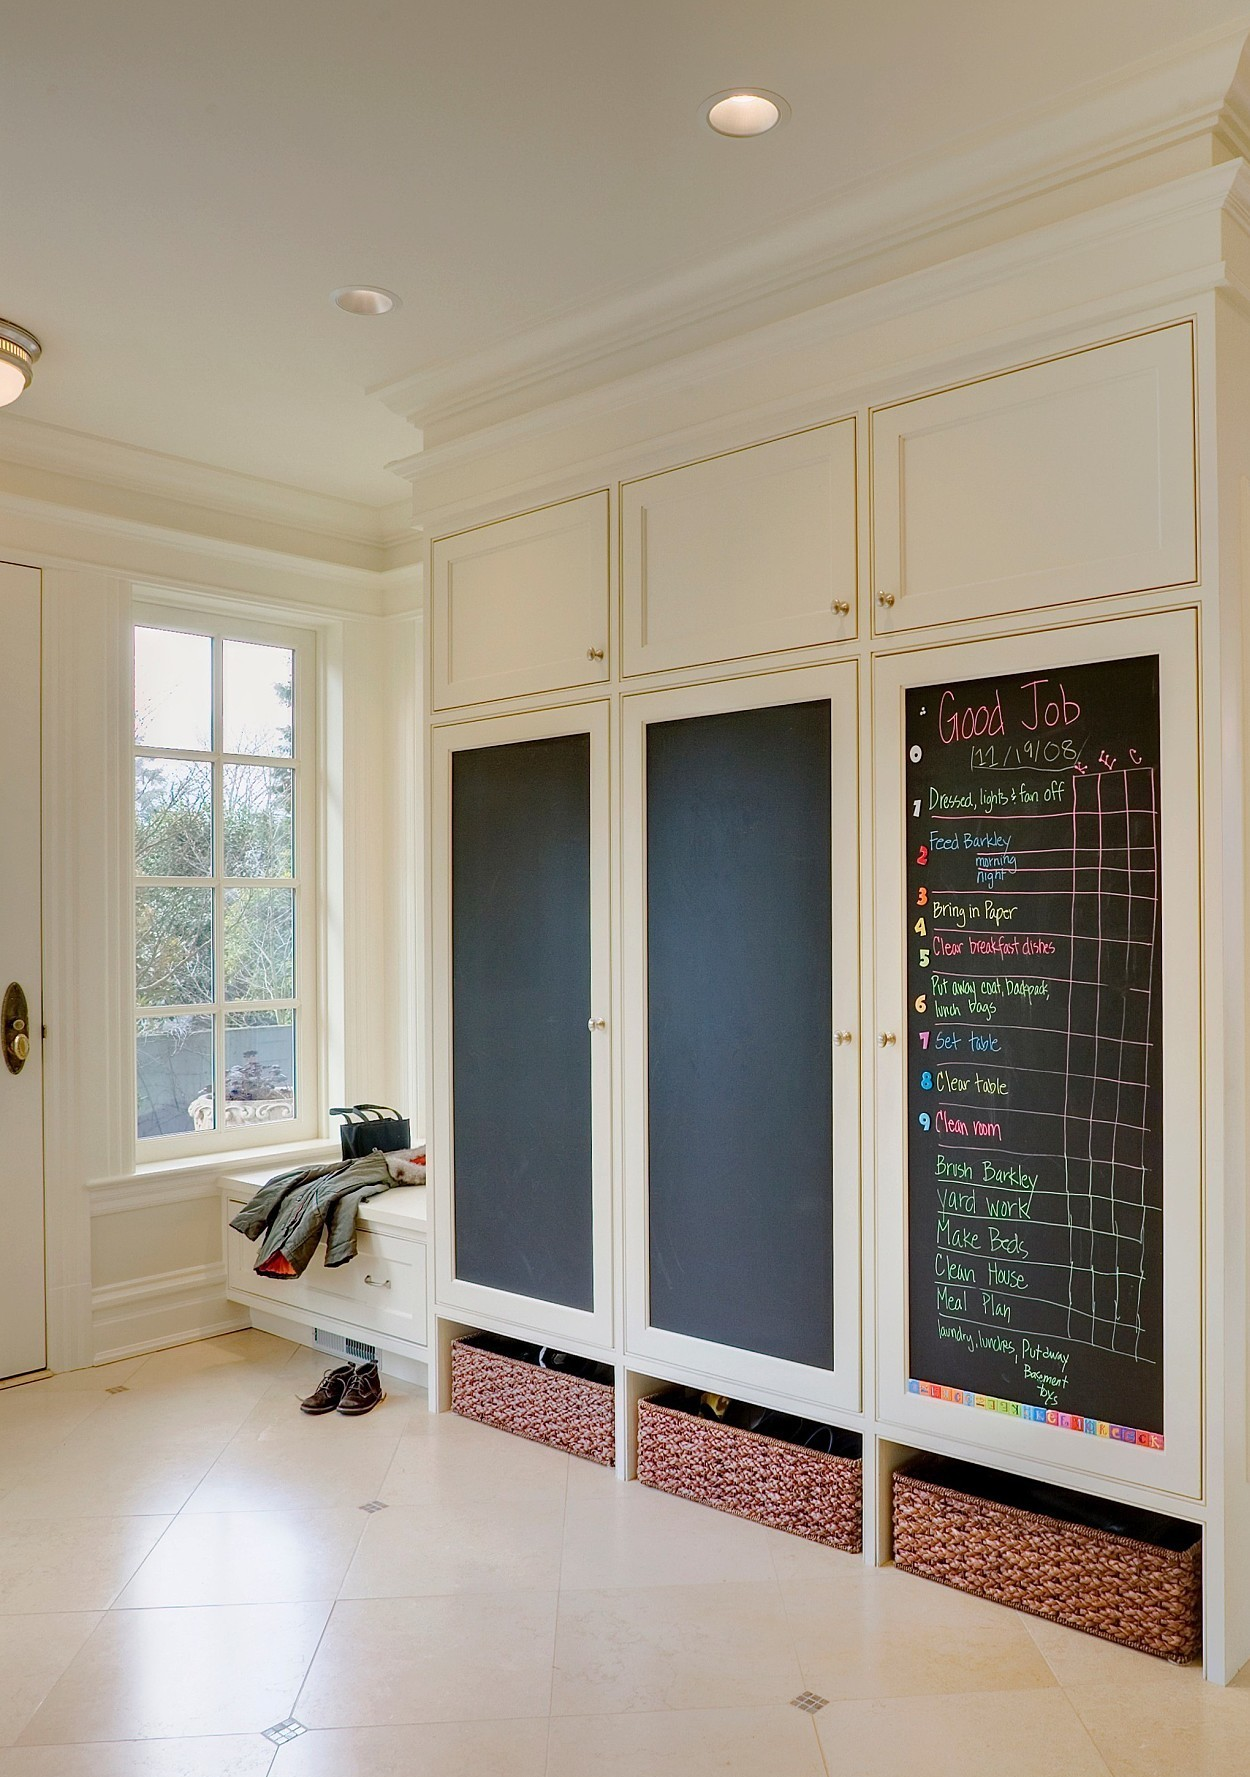 8 Fun and Functional Mudroom Ideas for a Super-Organized Home | Martha Stewart